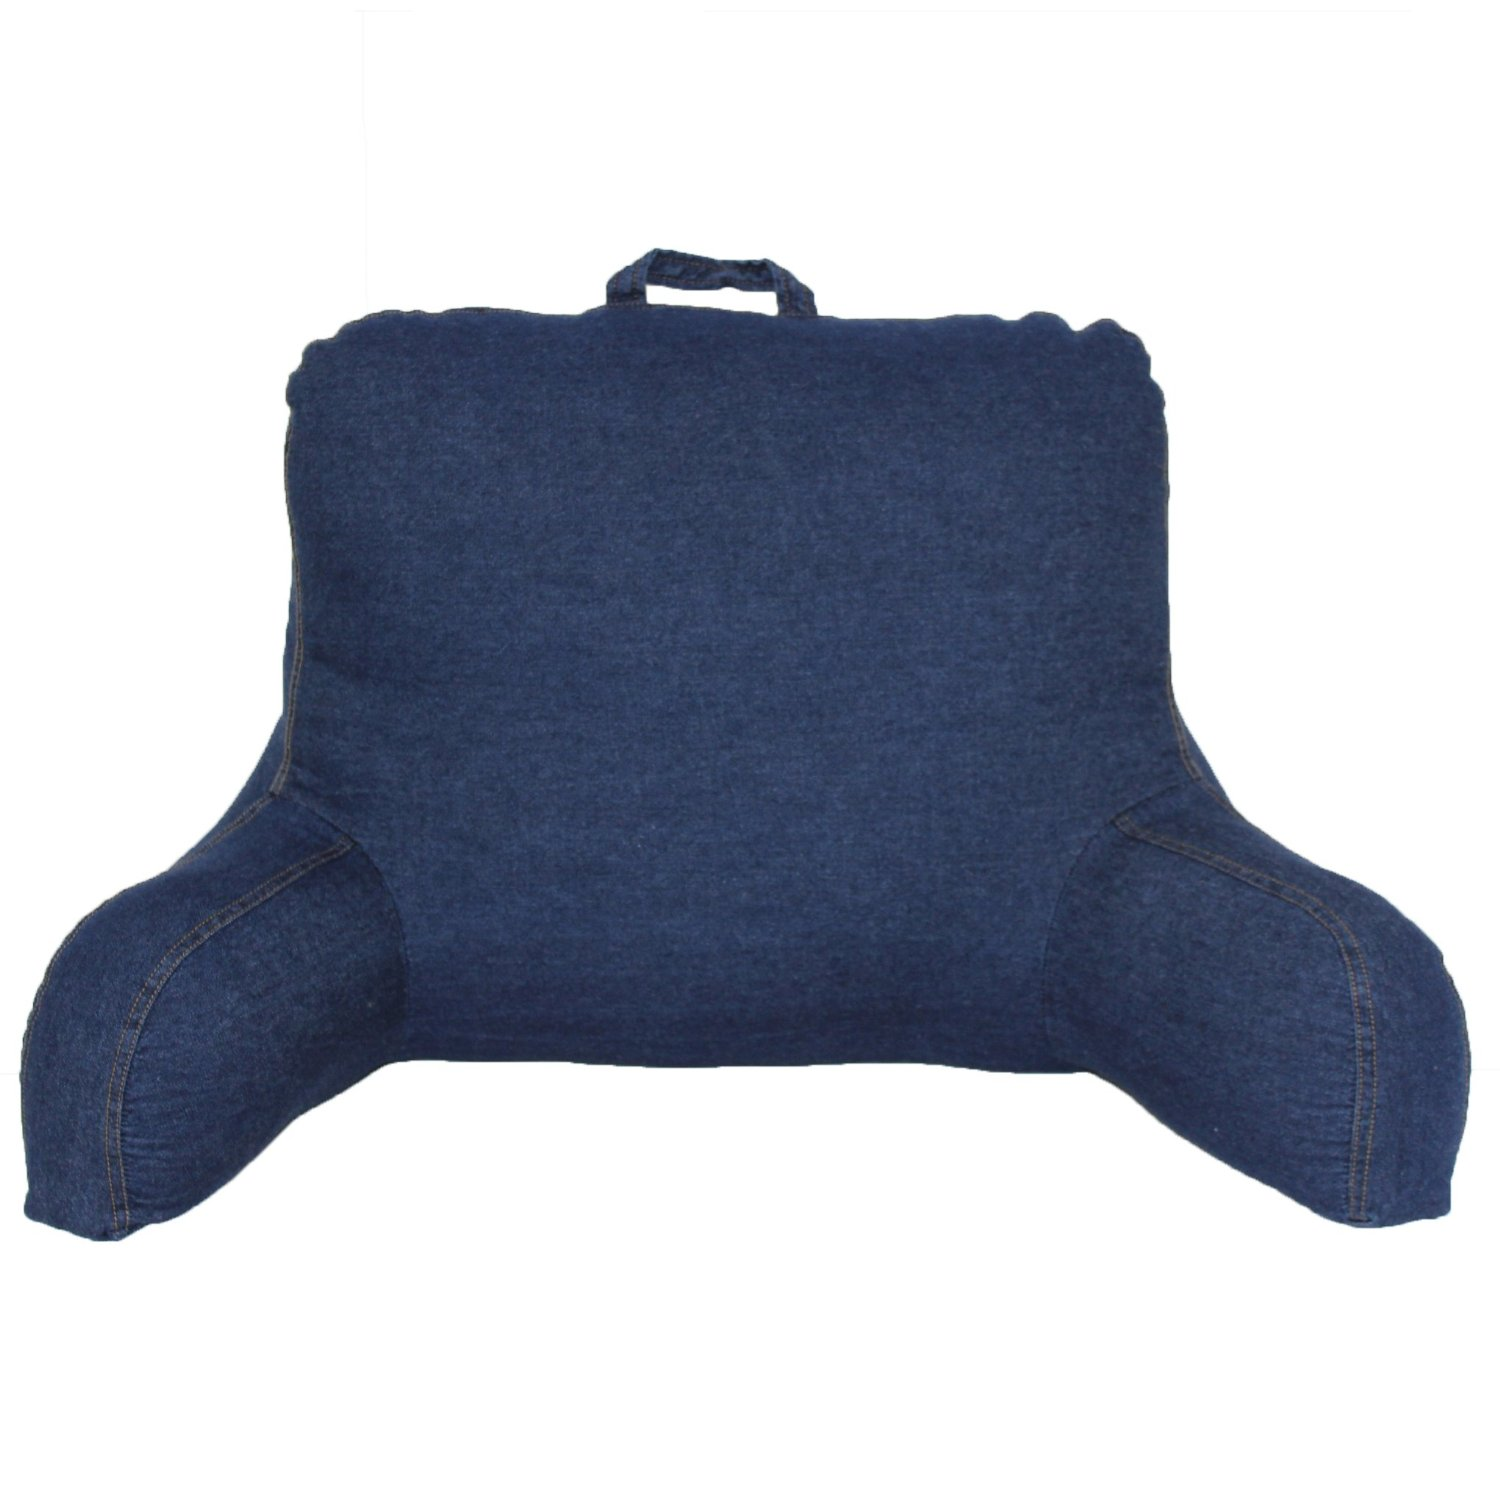 Extra Comfort Bed Pillow with Arms for Any Purpose: Bed Pillow With Arms | Backrest Cushion | Pillow With Armrest